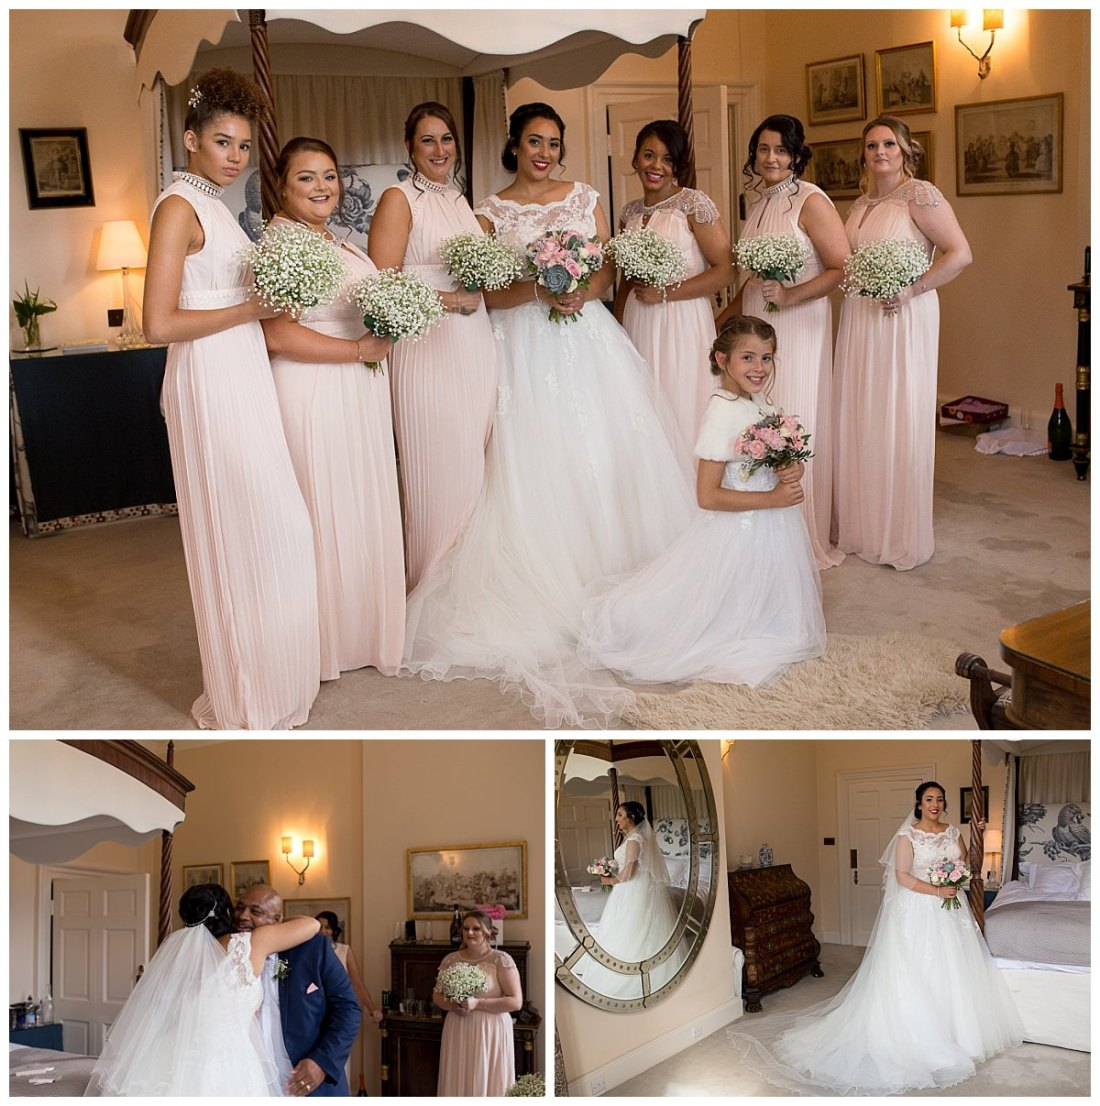 Bride and bridesmaids before the wedding ceremony